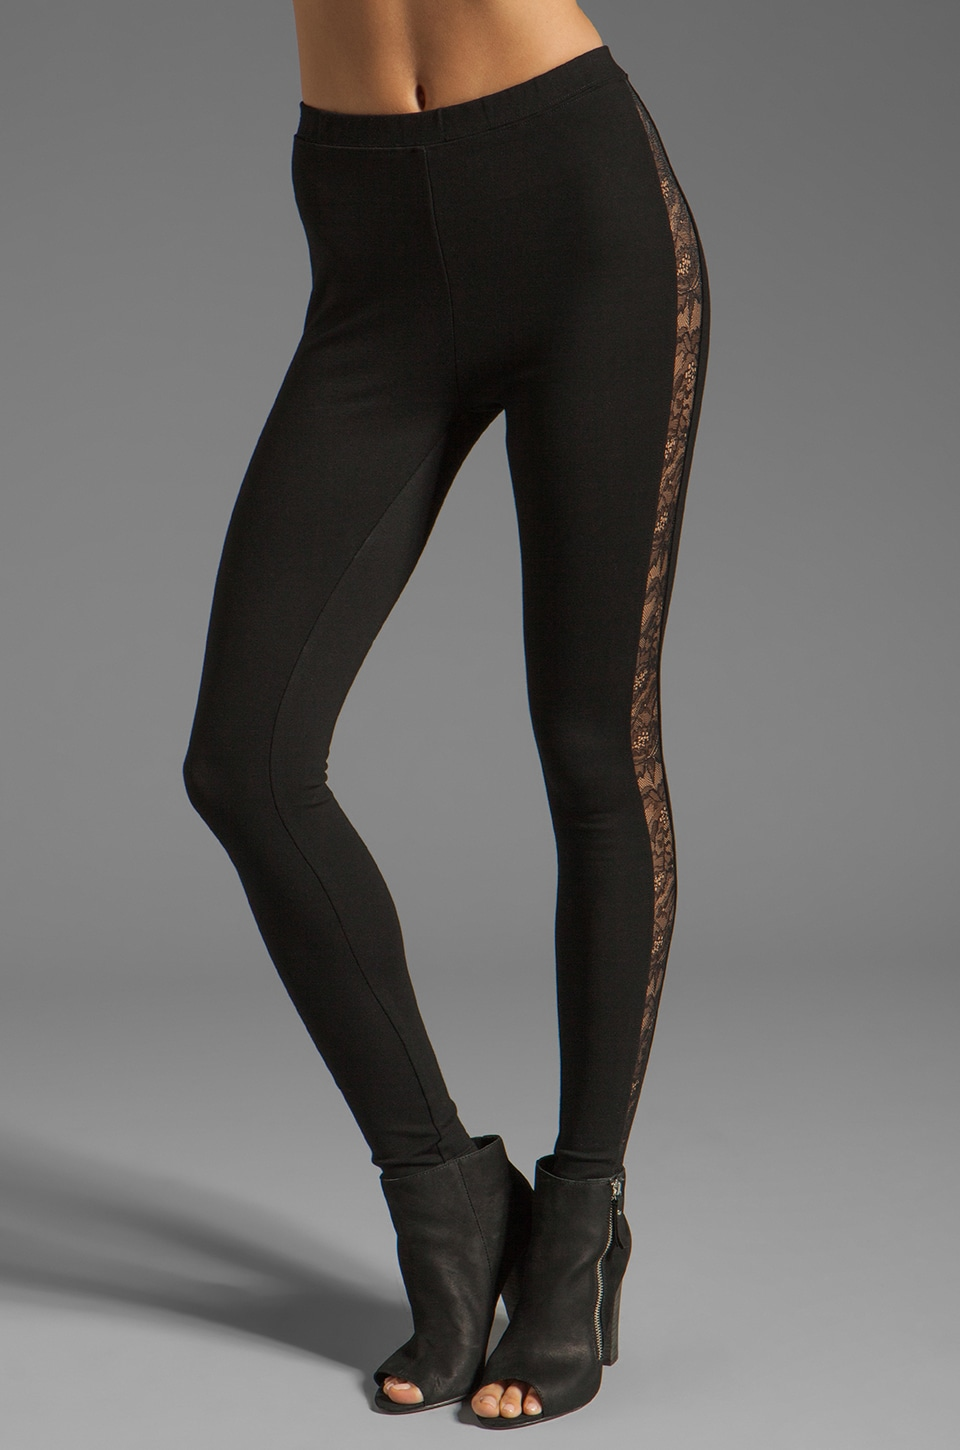 STYLESTALKER Video Games Legging in Black